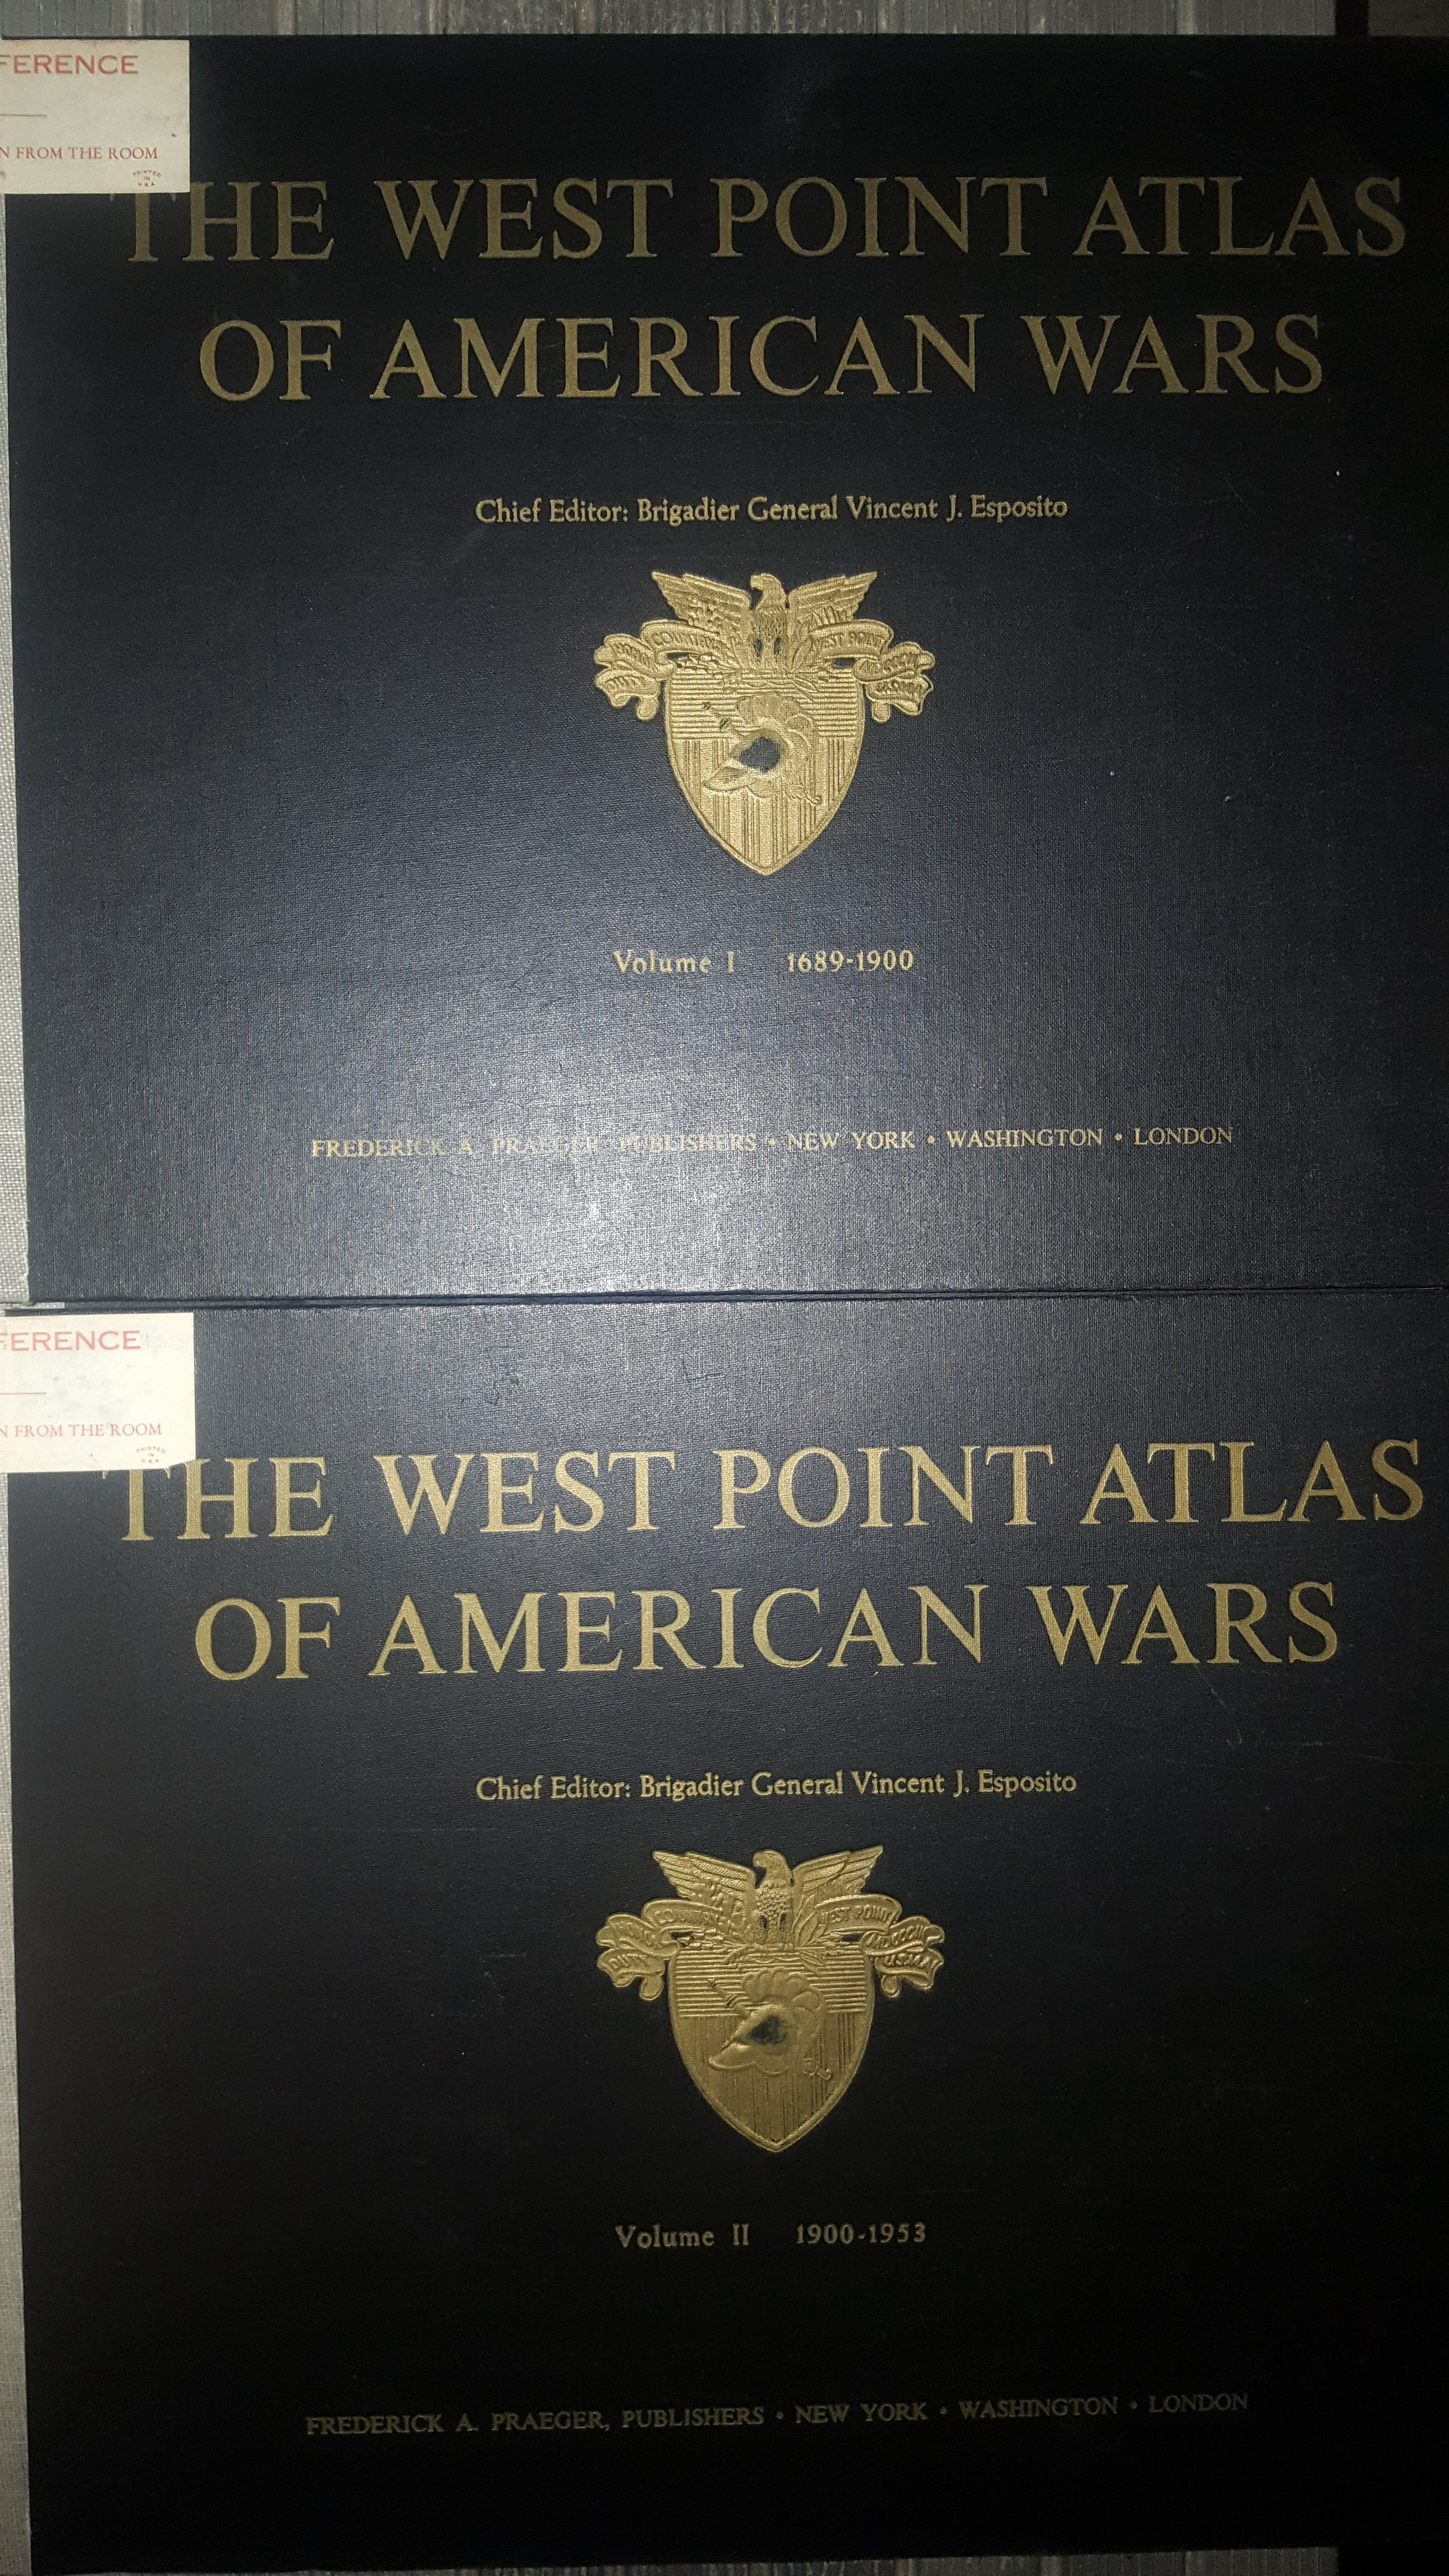 West Point Atlas of American Wars, 1689-1953 Book